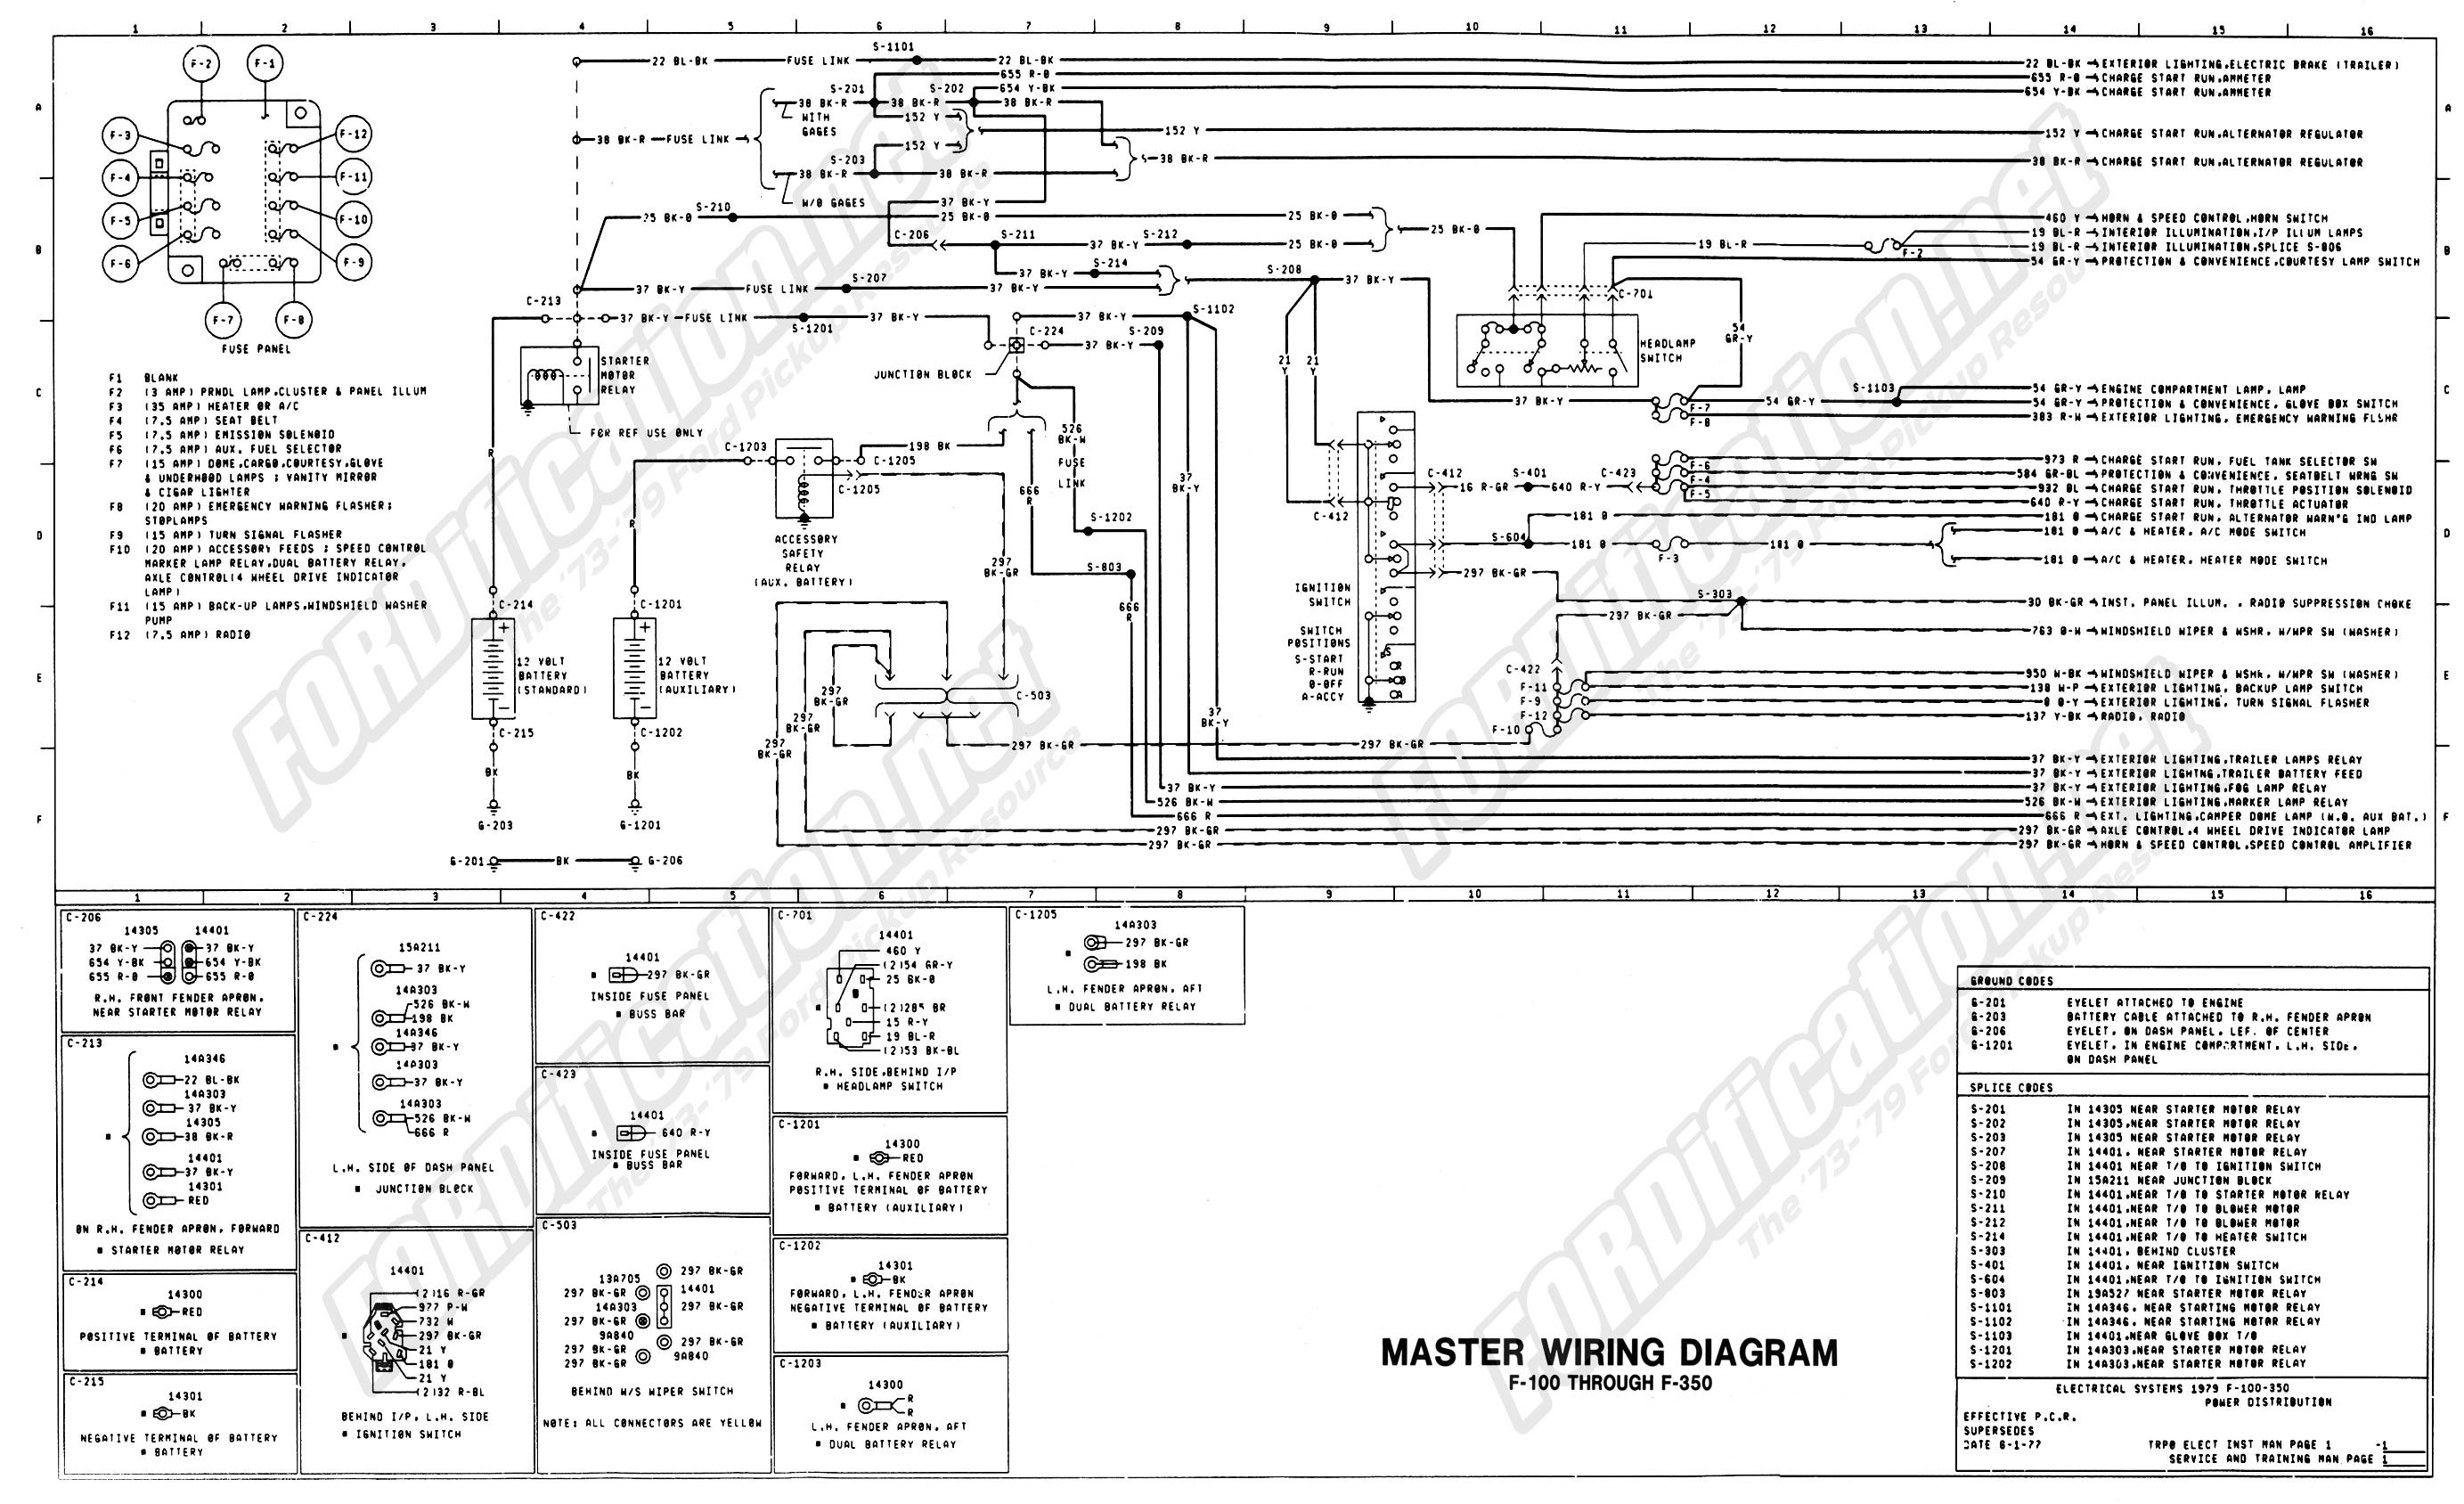 Ford 302 Engine Diagram 79 F150 solenoid Wiring Diagram ford Truck  Enthusiasts forums Of Ford 302